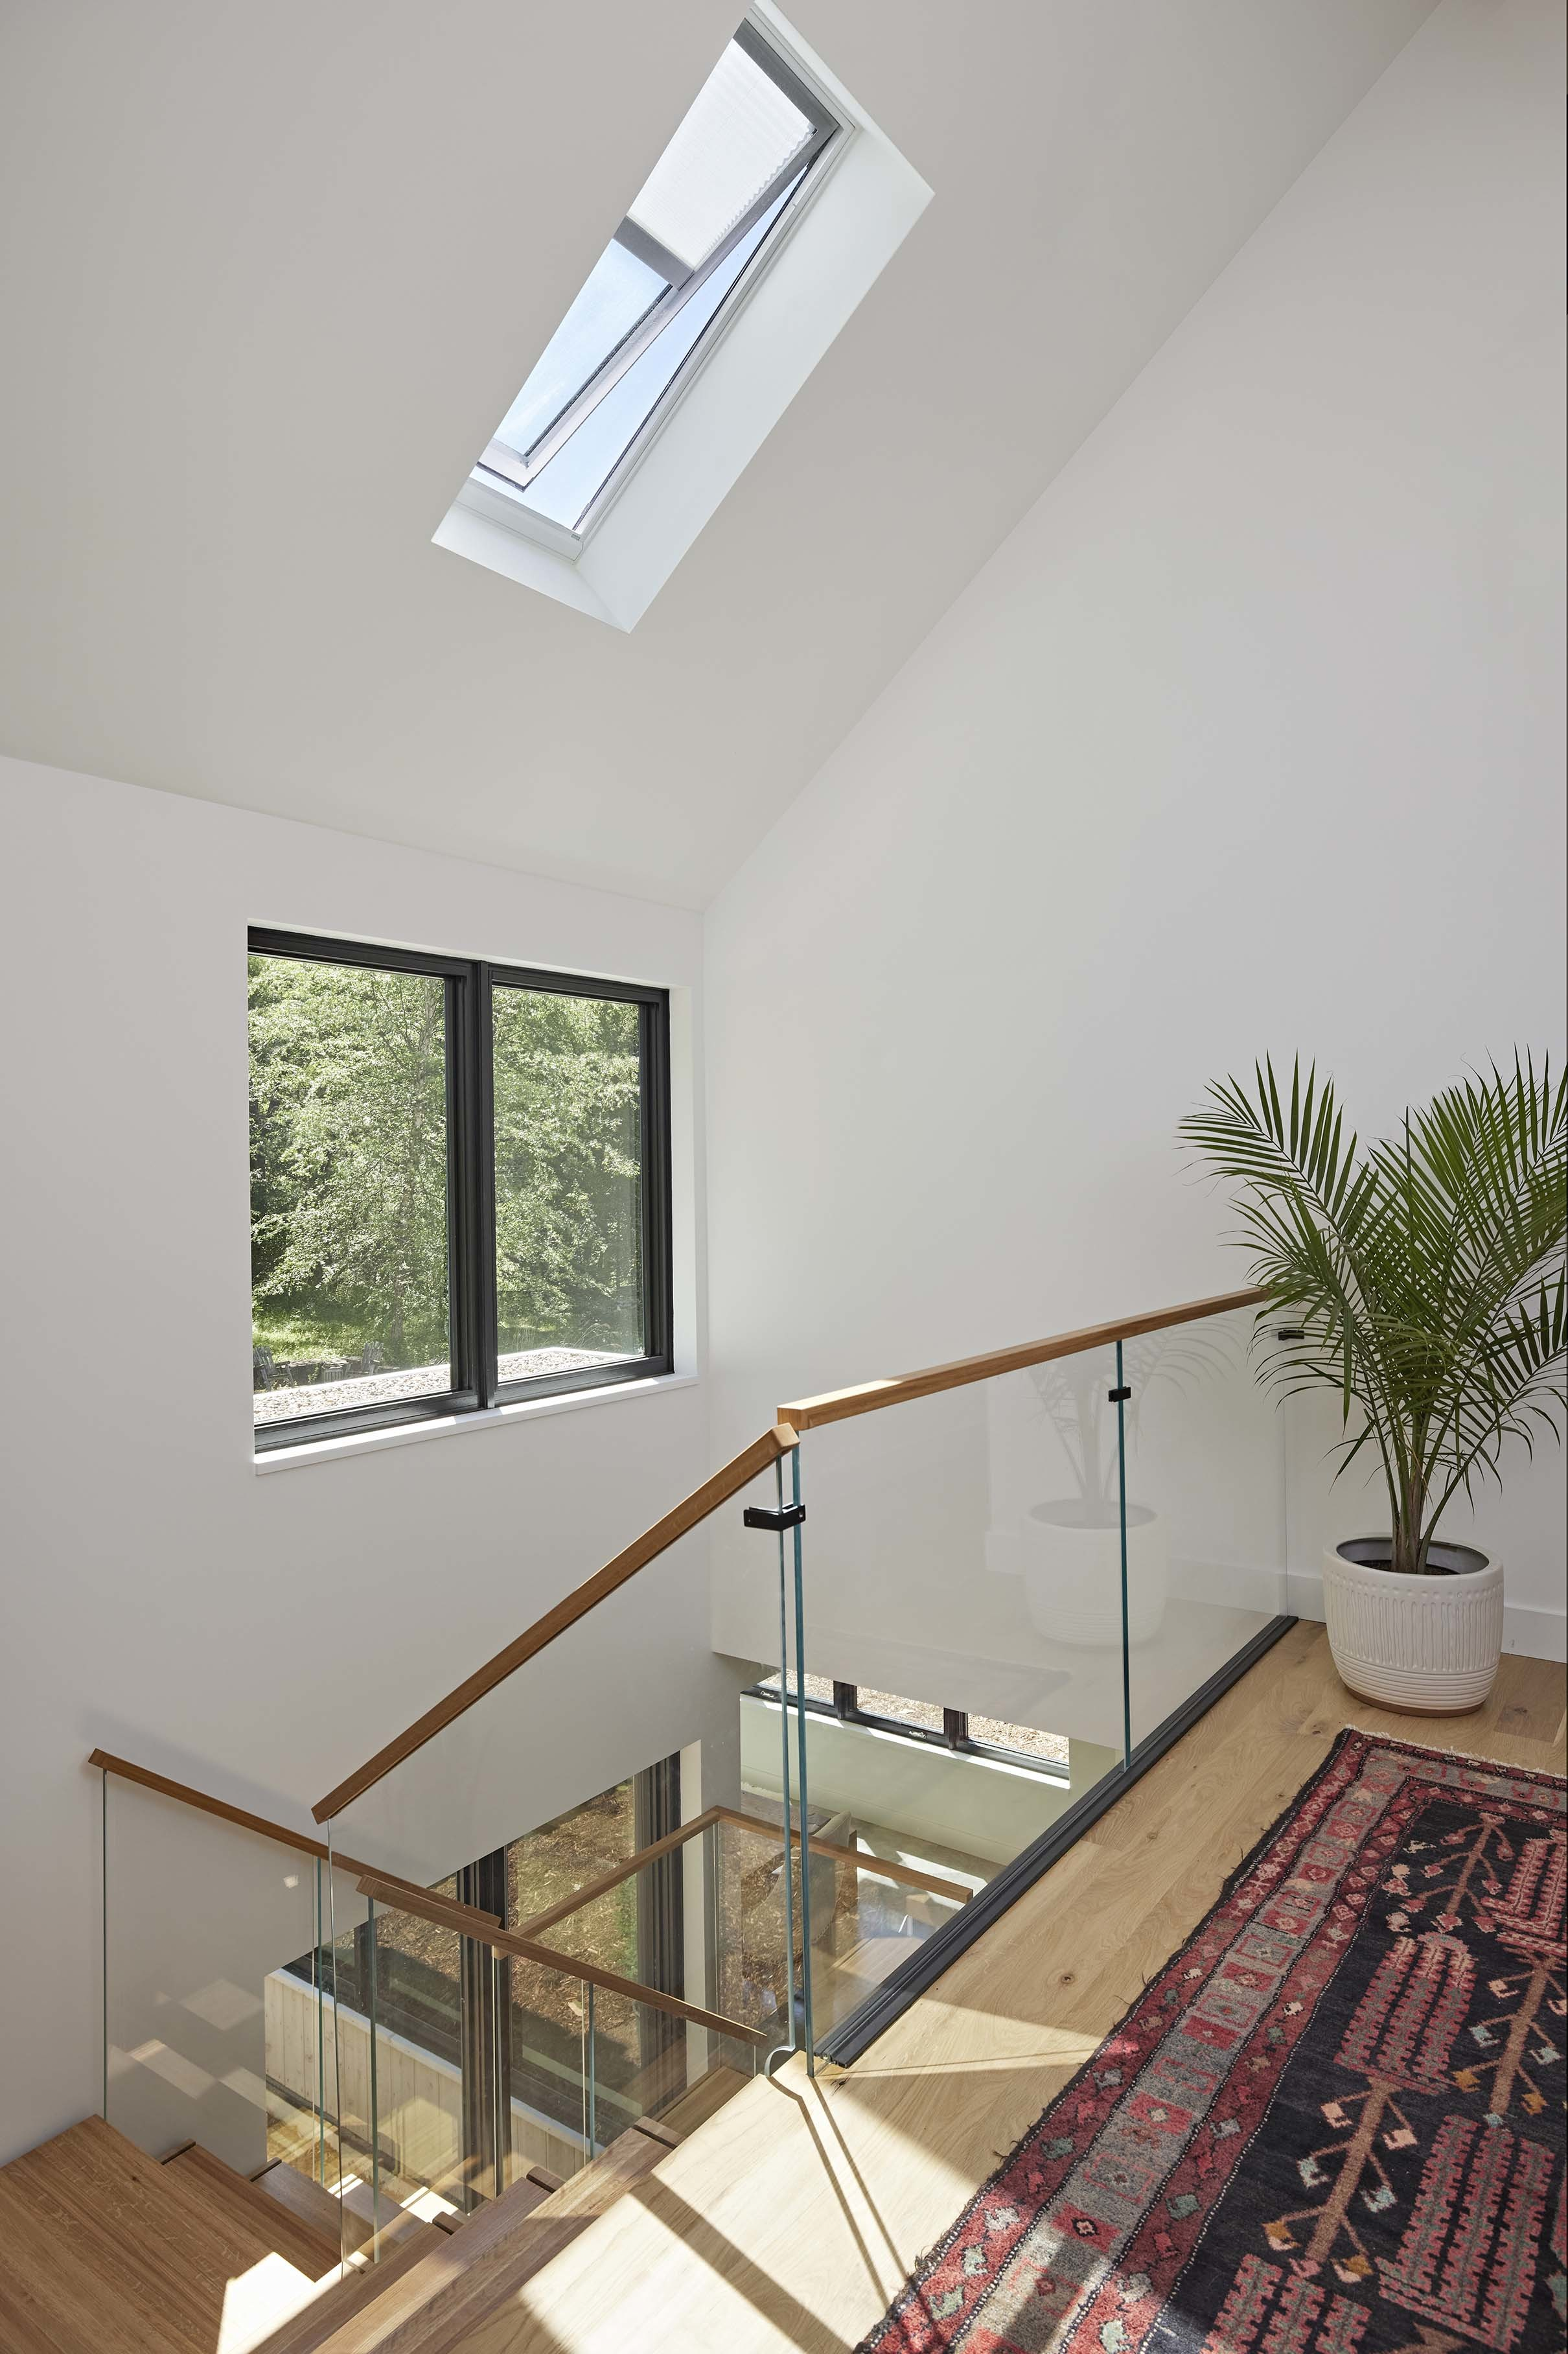 Stairwell open skylight shades rug plant